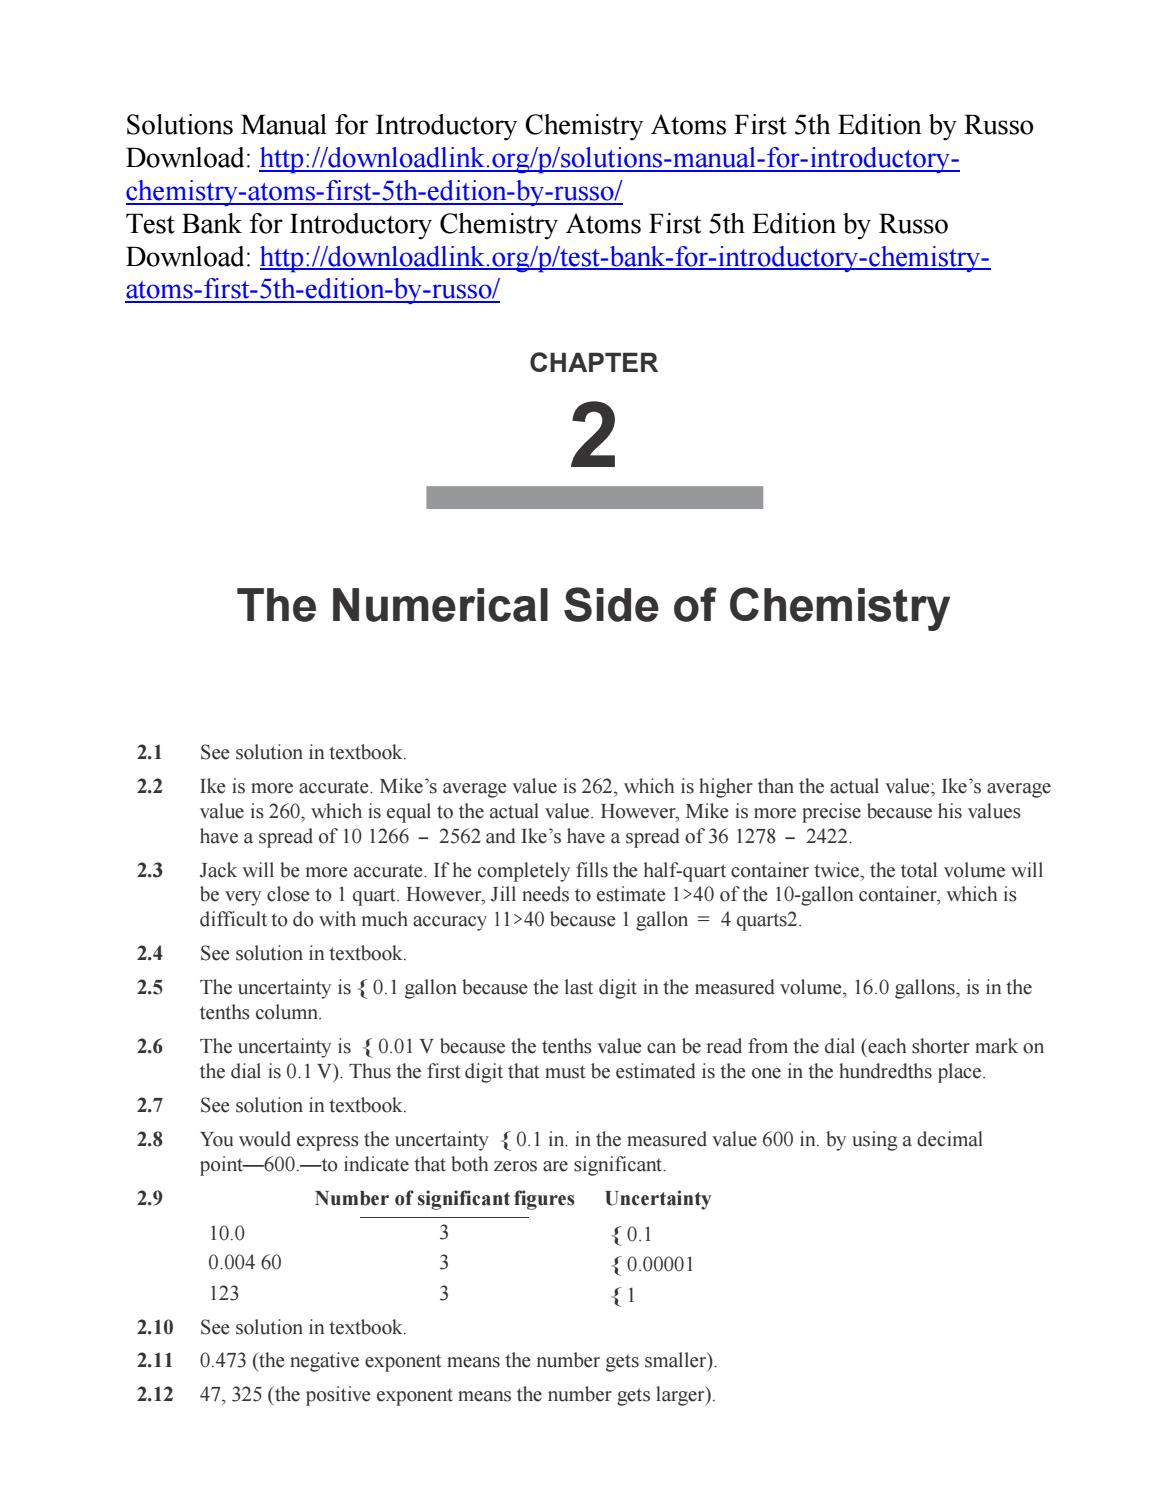 Solutions Manual for Introductory Chemistry Atoms First 5th Edition by  Russo by ys057 - issuu